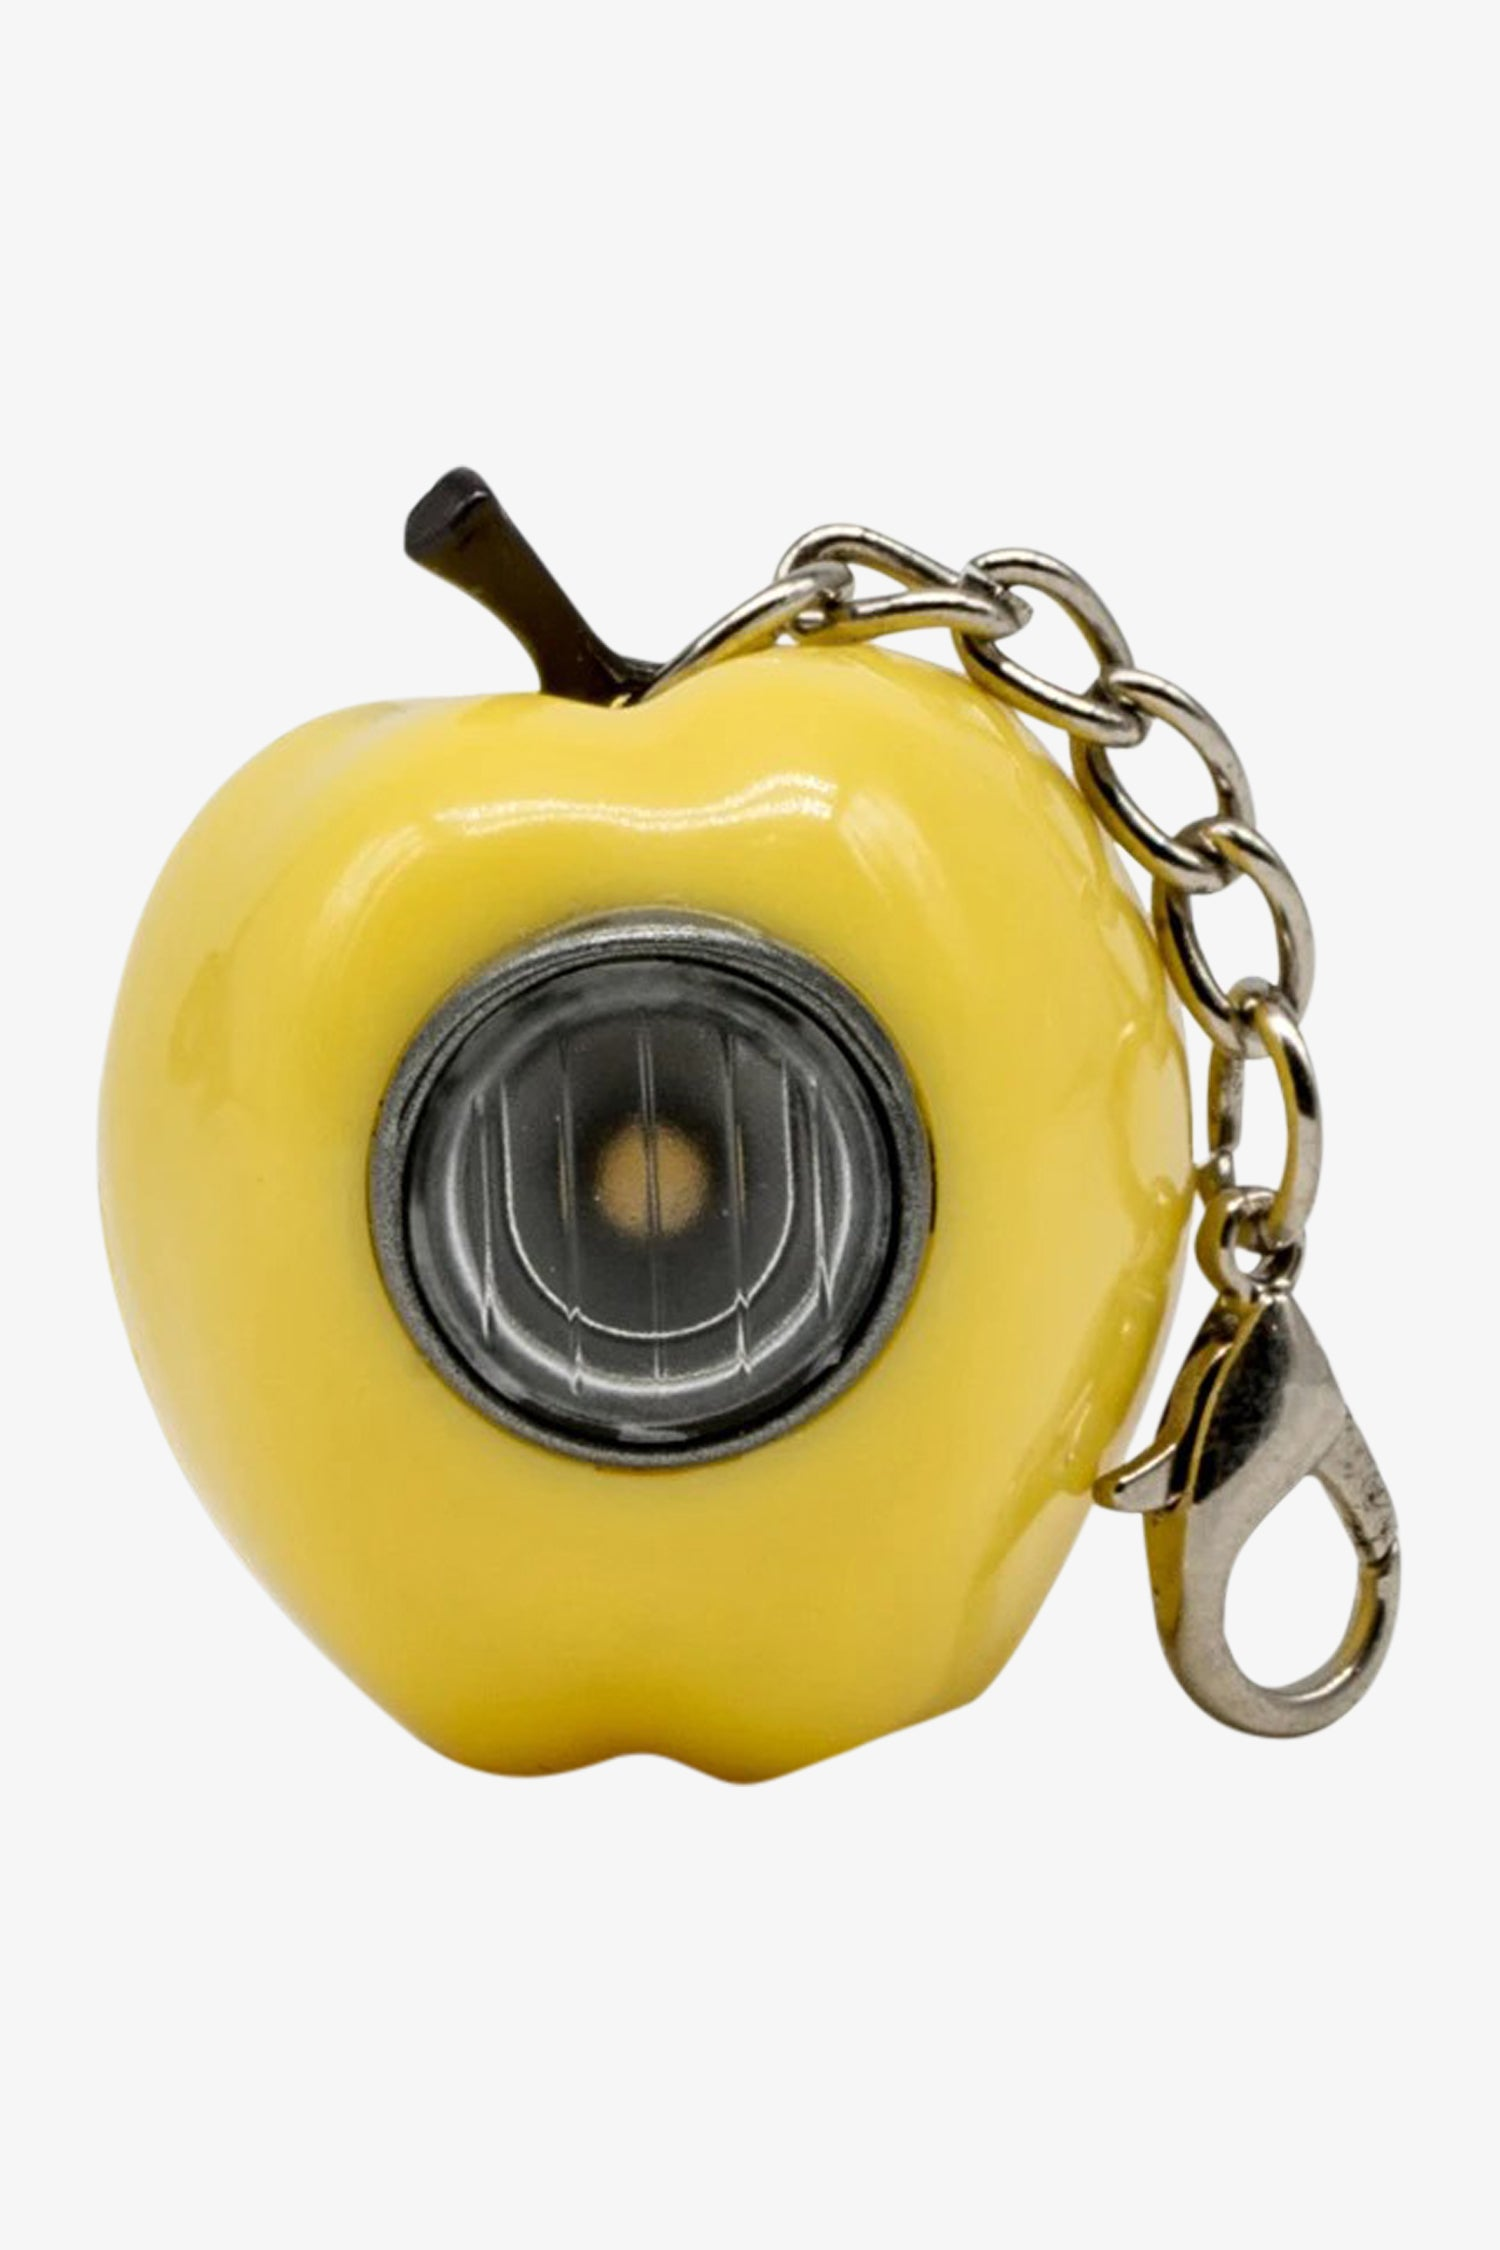 FRAME - MEDICOM TOY Undercover Gilapple Light Keychain Yellow